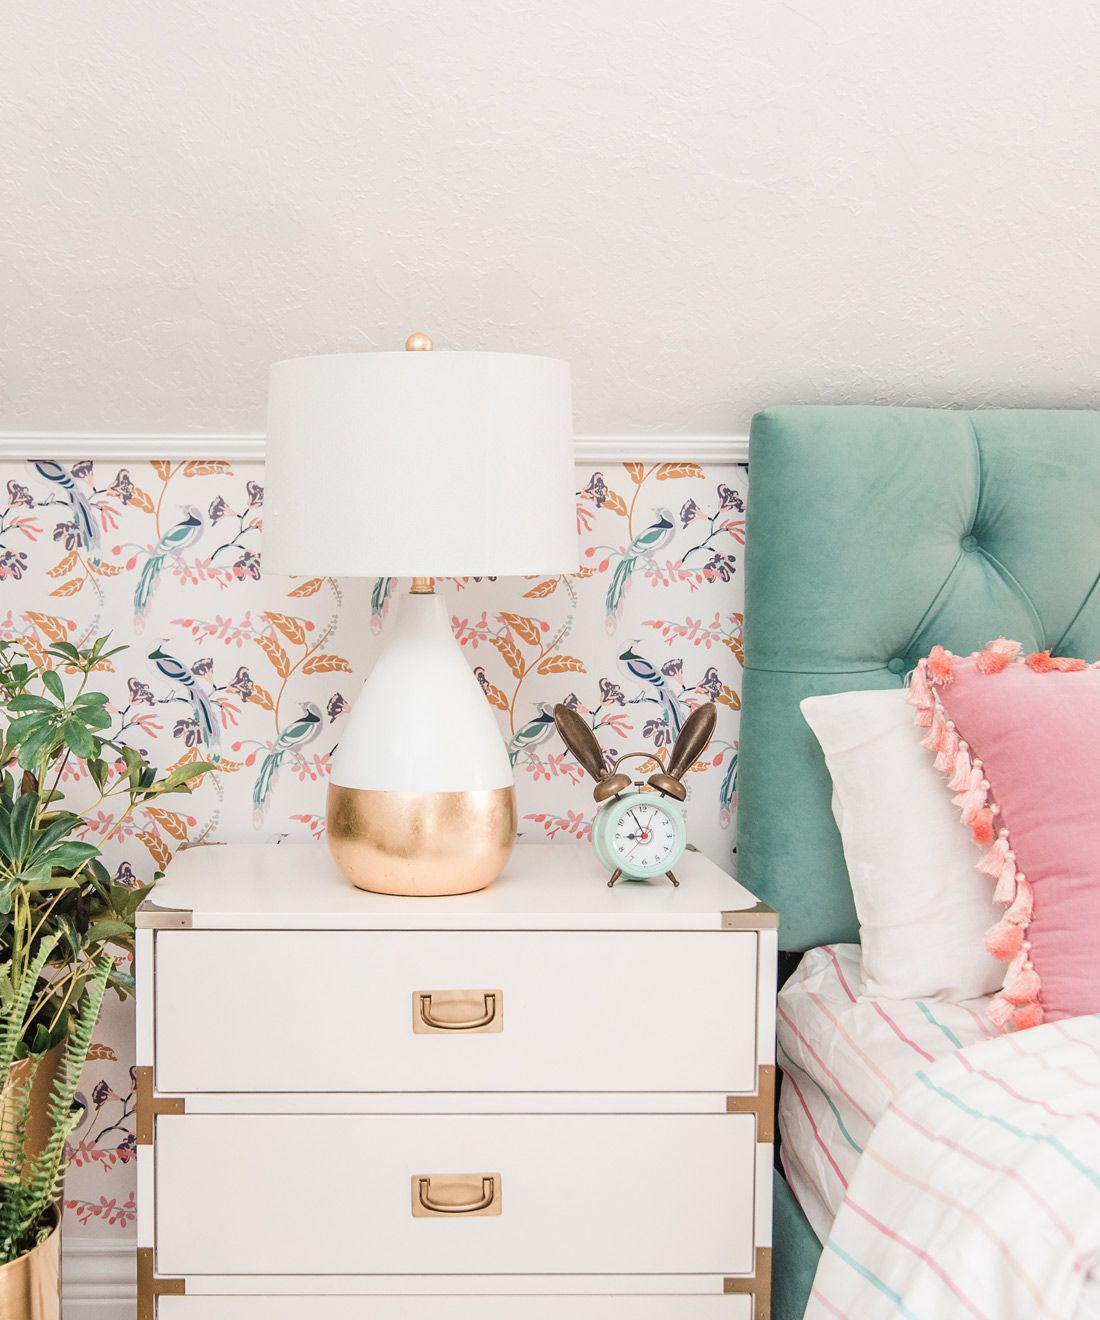 Birds of Paradise • Bedroom Wallpaper •At Home With Ashley Wilson •One Room Challenge